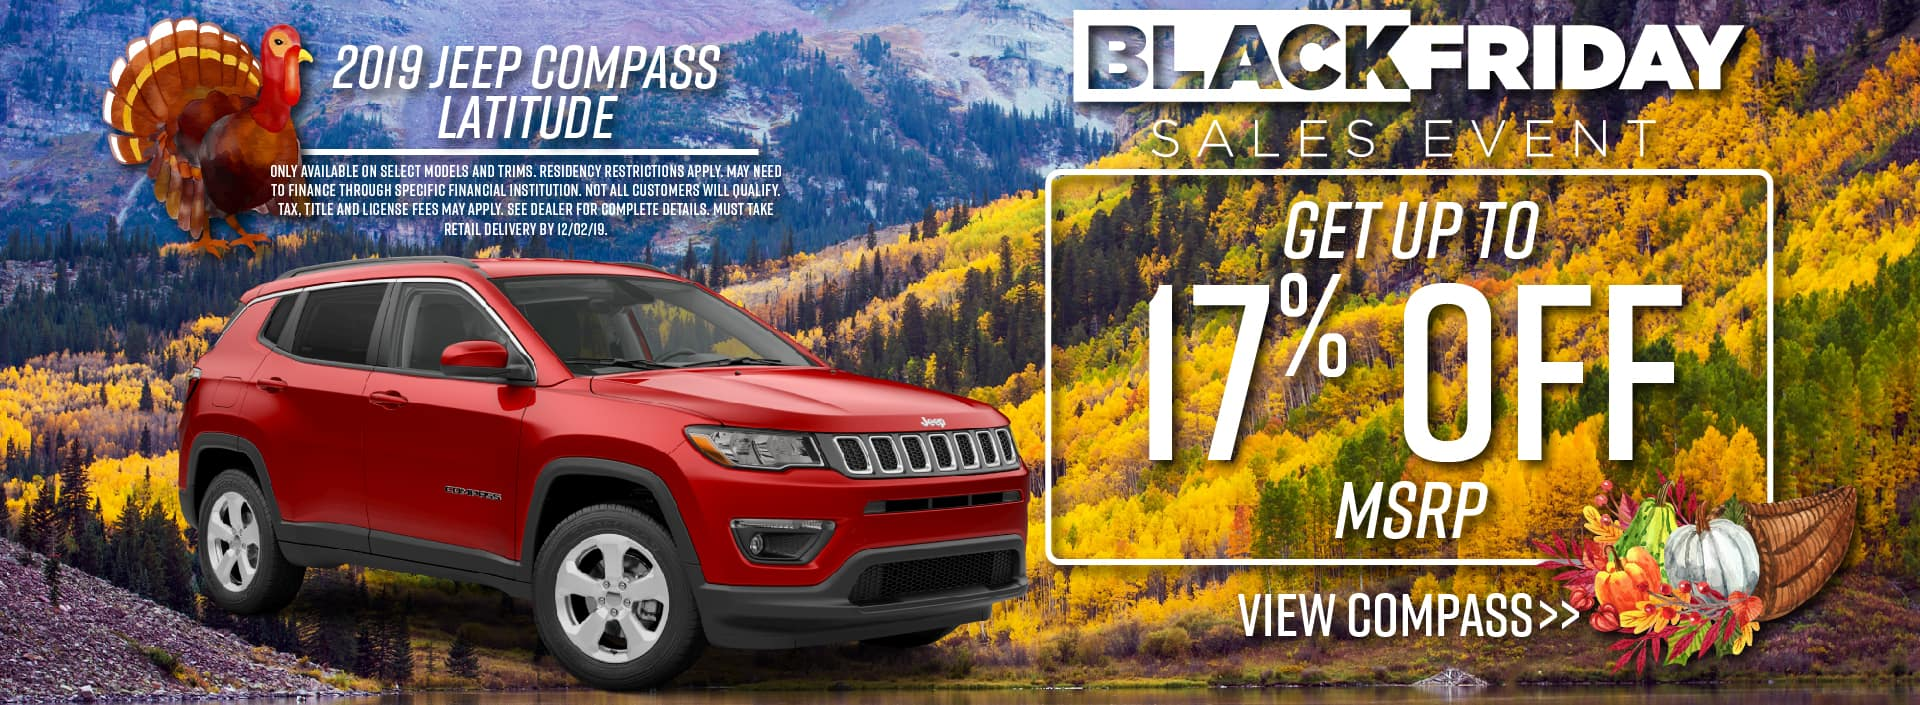 Get Savings at the Black Friday Sales Event near Loveland CO